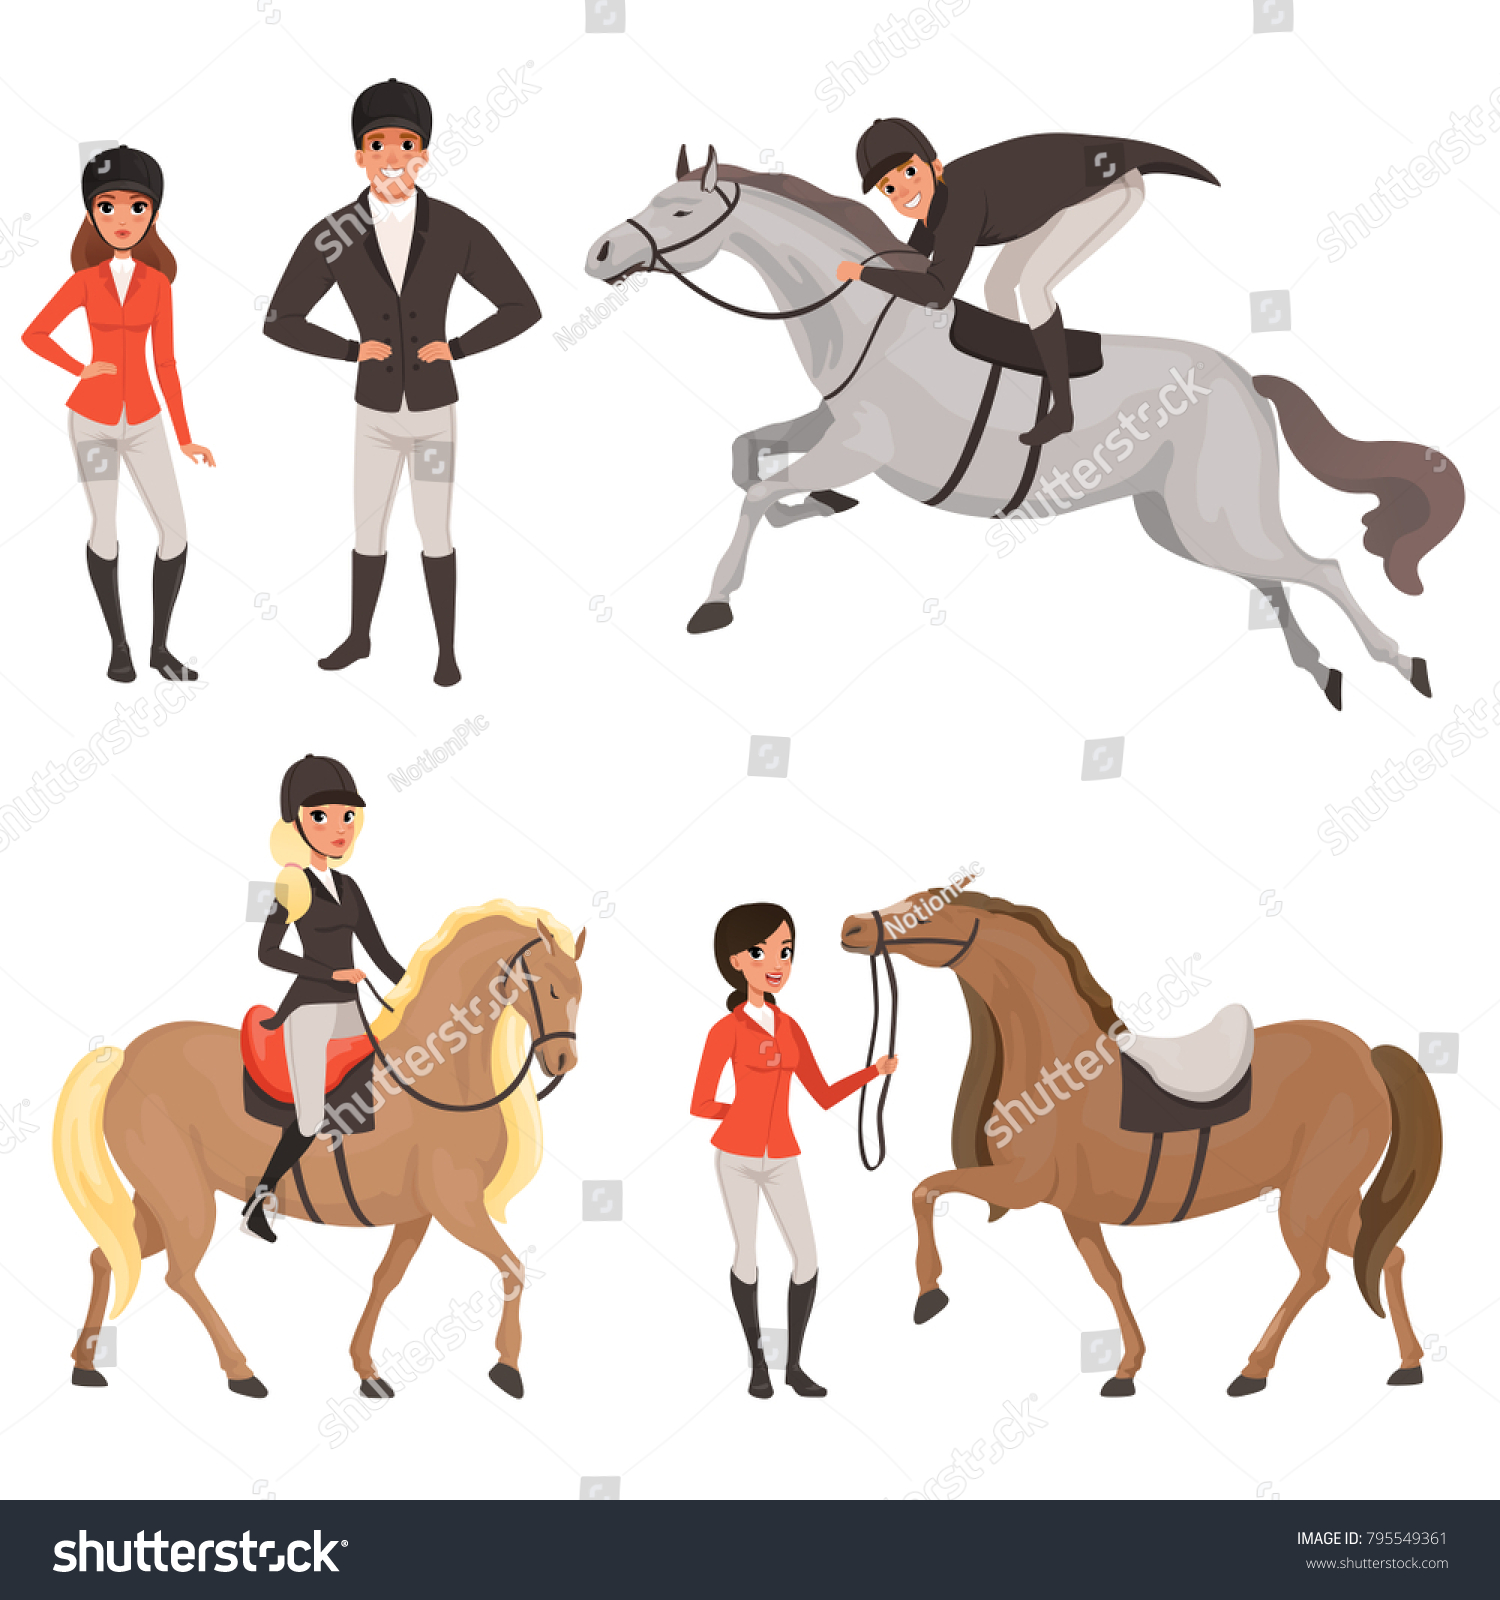 Set Of Jockeys And Horses In Different Actions Equestrian Sport Concept Cartoon People Characters